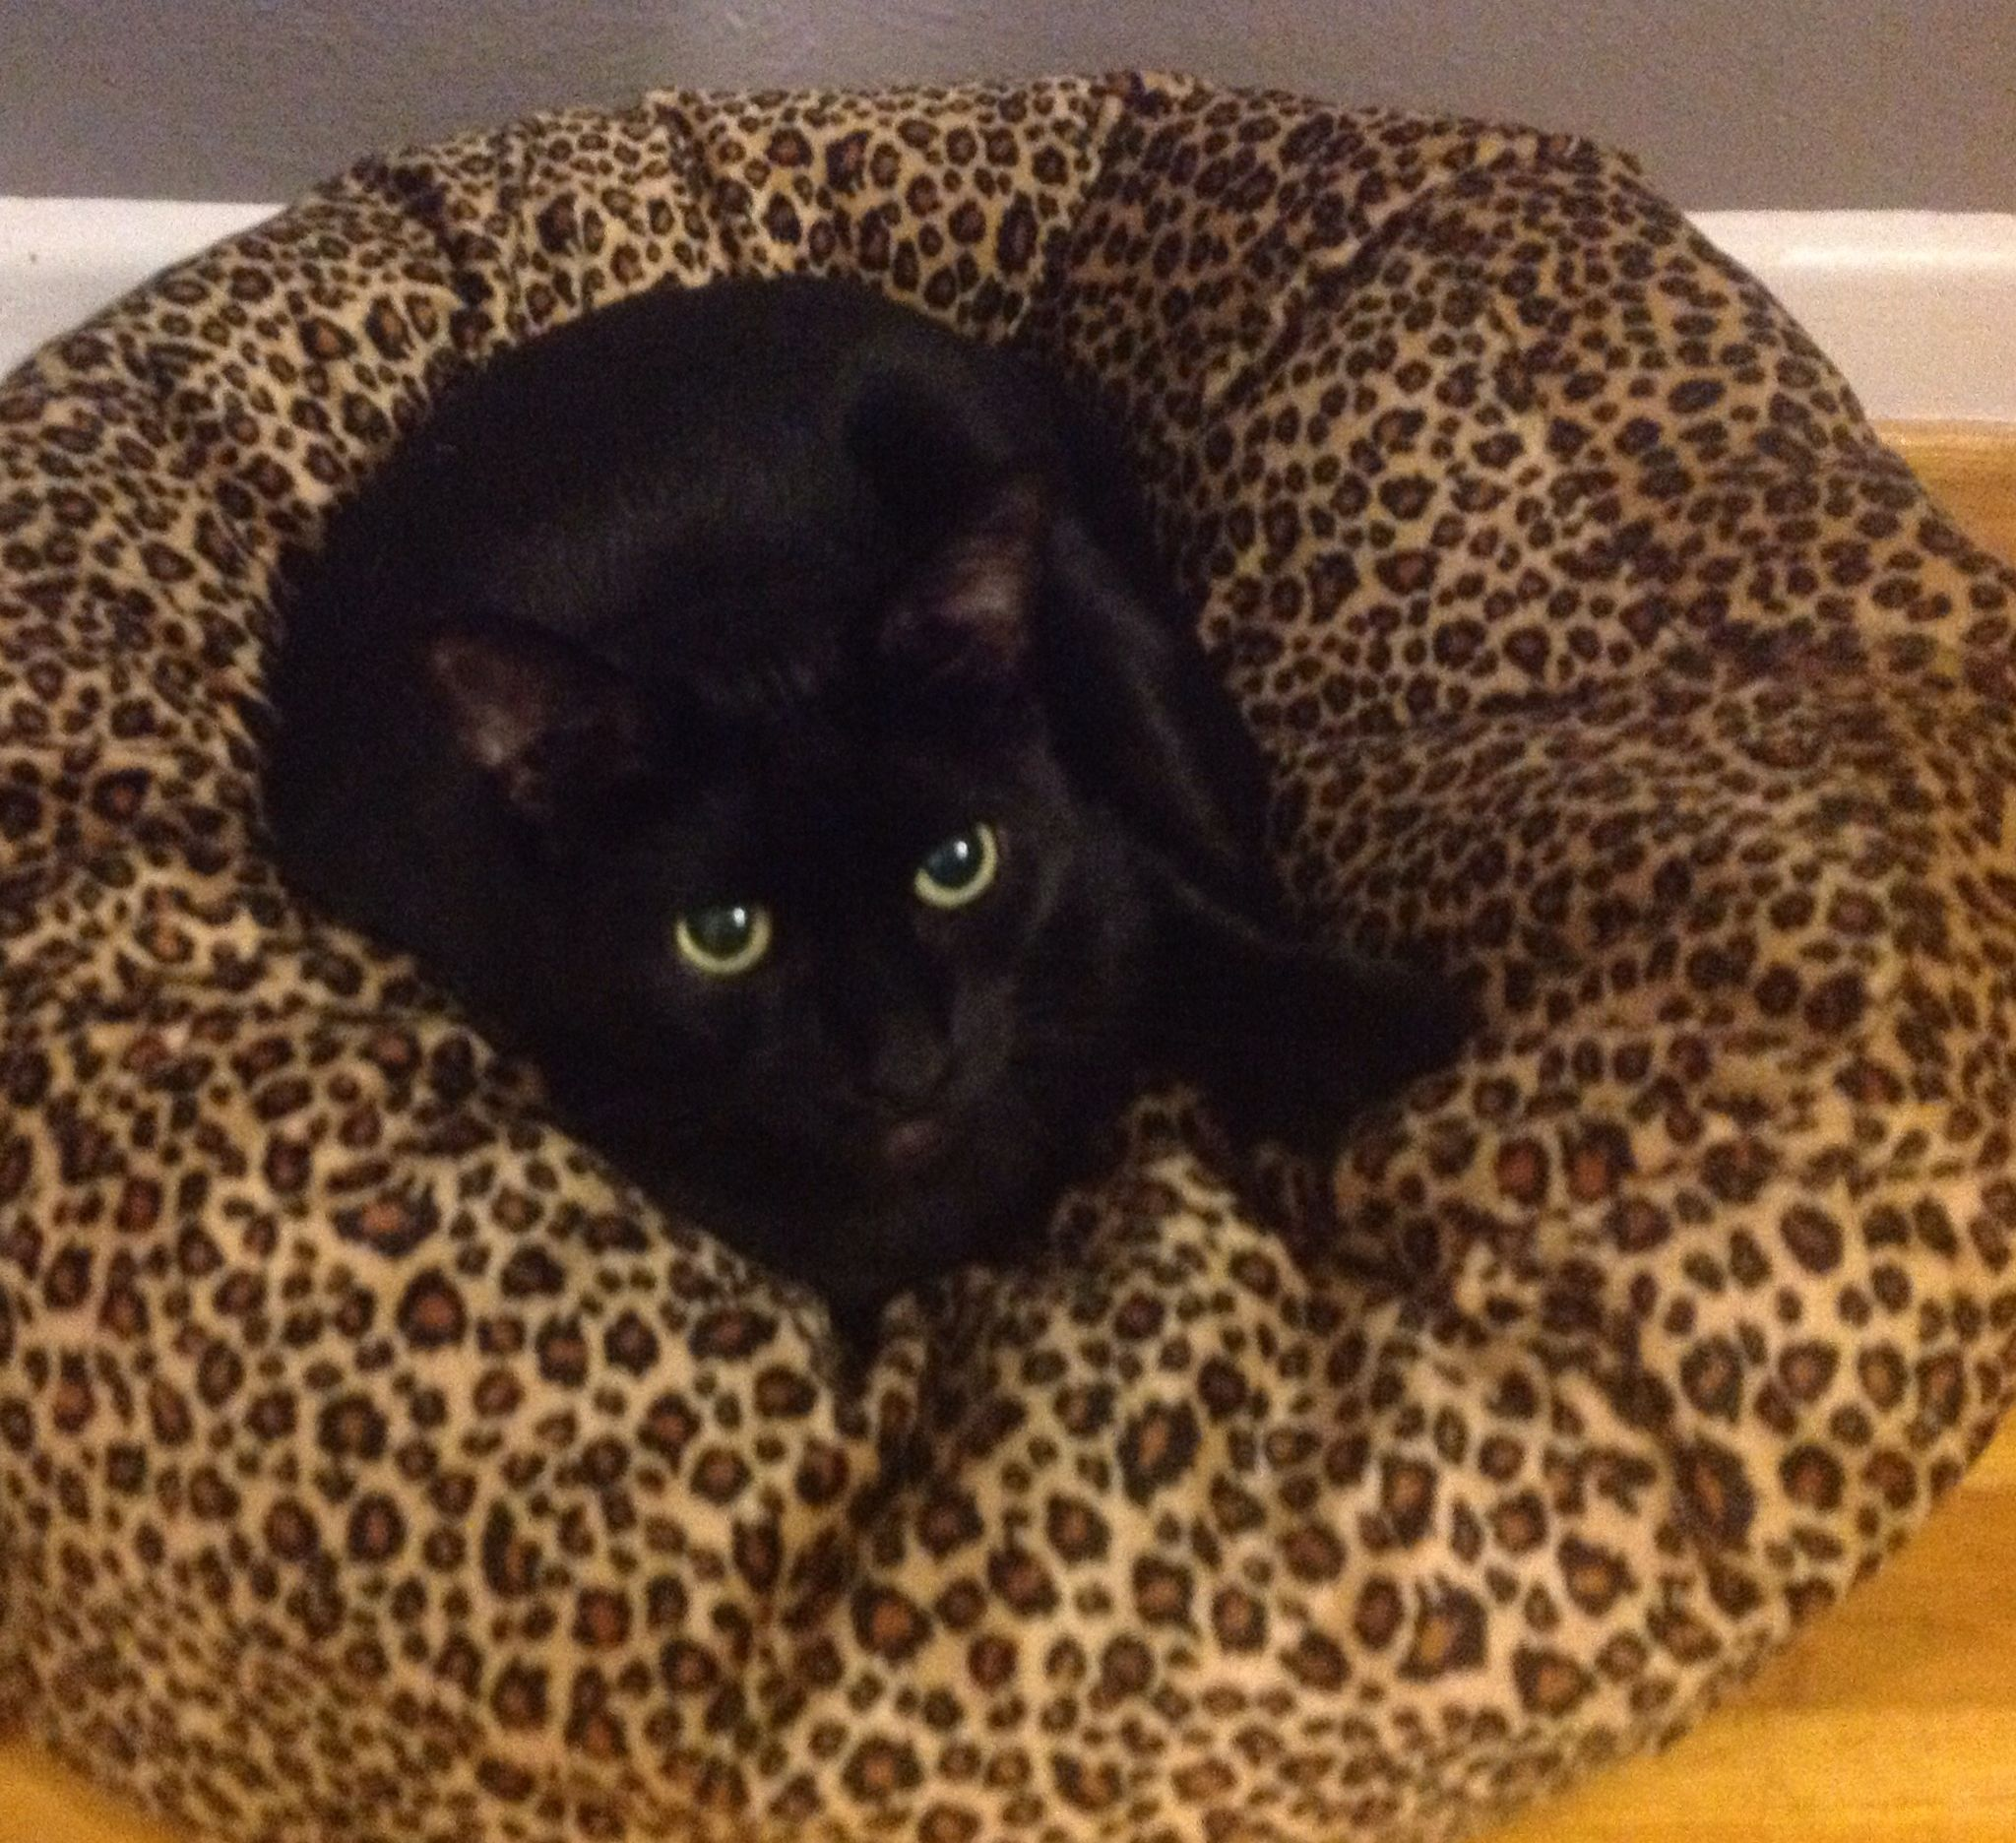 I look so handsome in my new bed...the mighty panther at